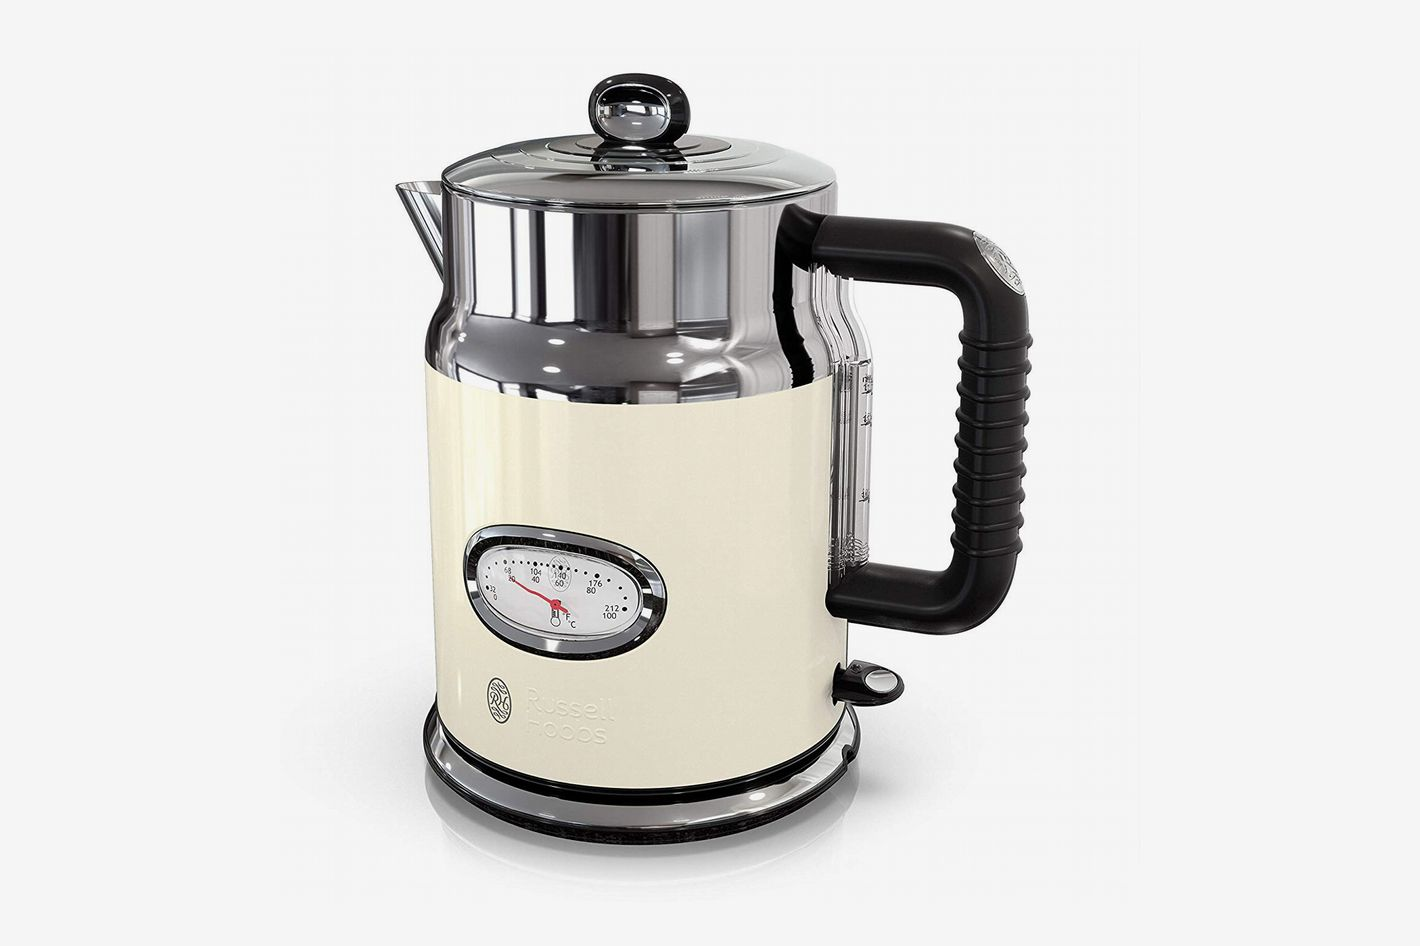 Russell Hobbs KE5550CRR Retro-Style Electric Kettle